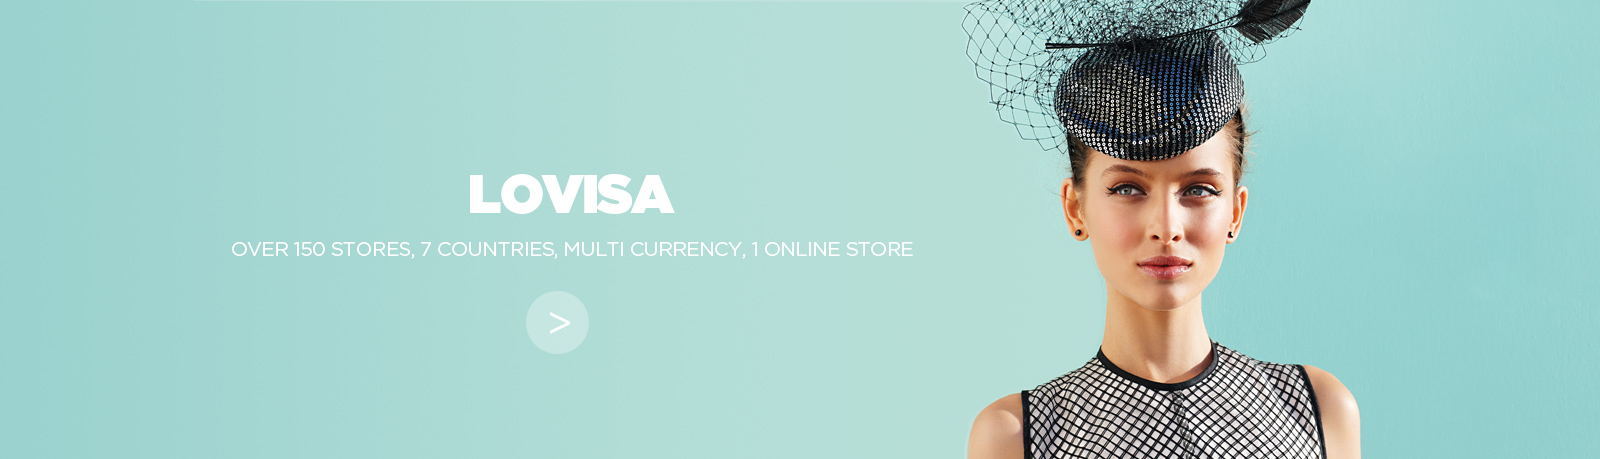 Lovisa e-commerce website and mobile site built on Magento by NOW Solutions Digital Agency